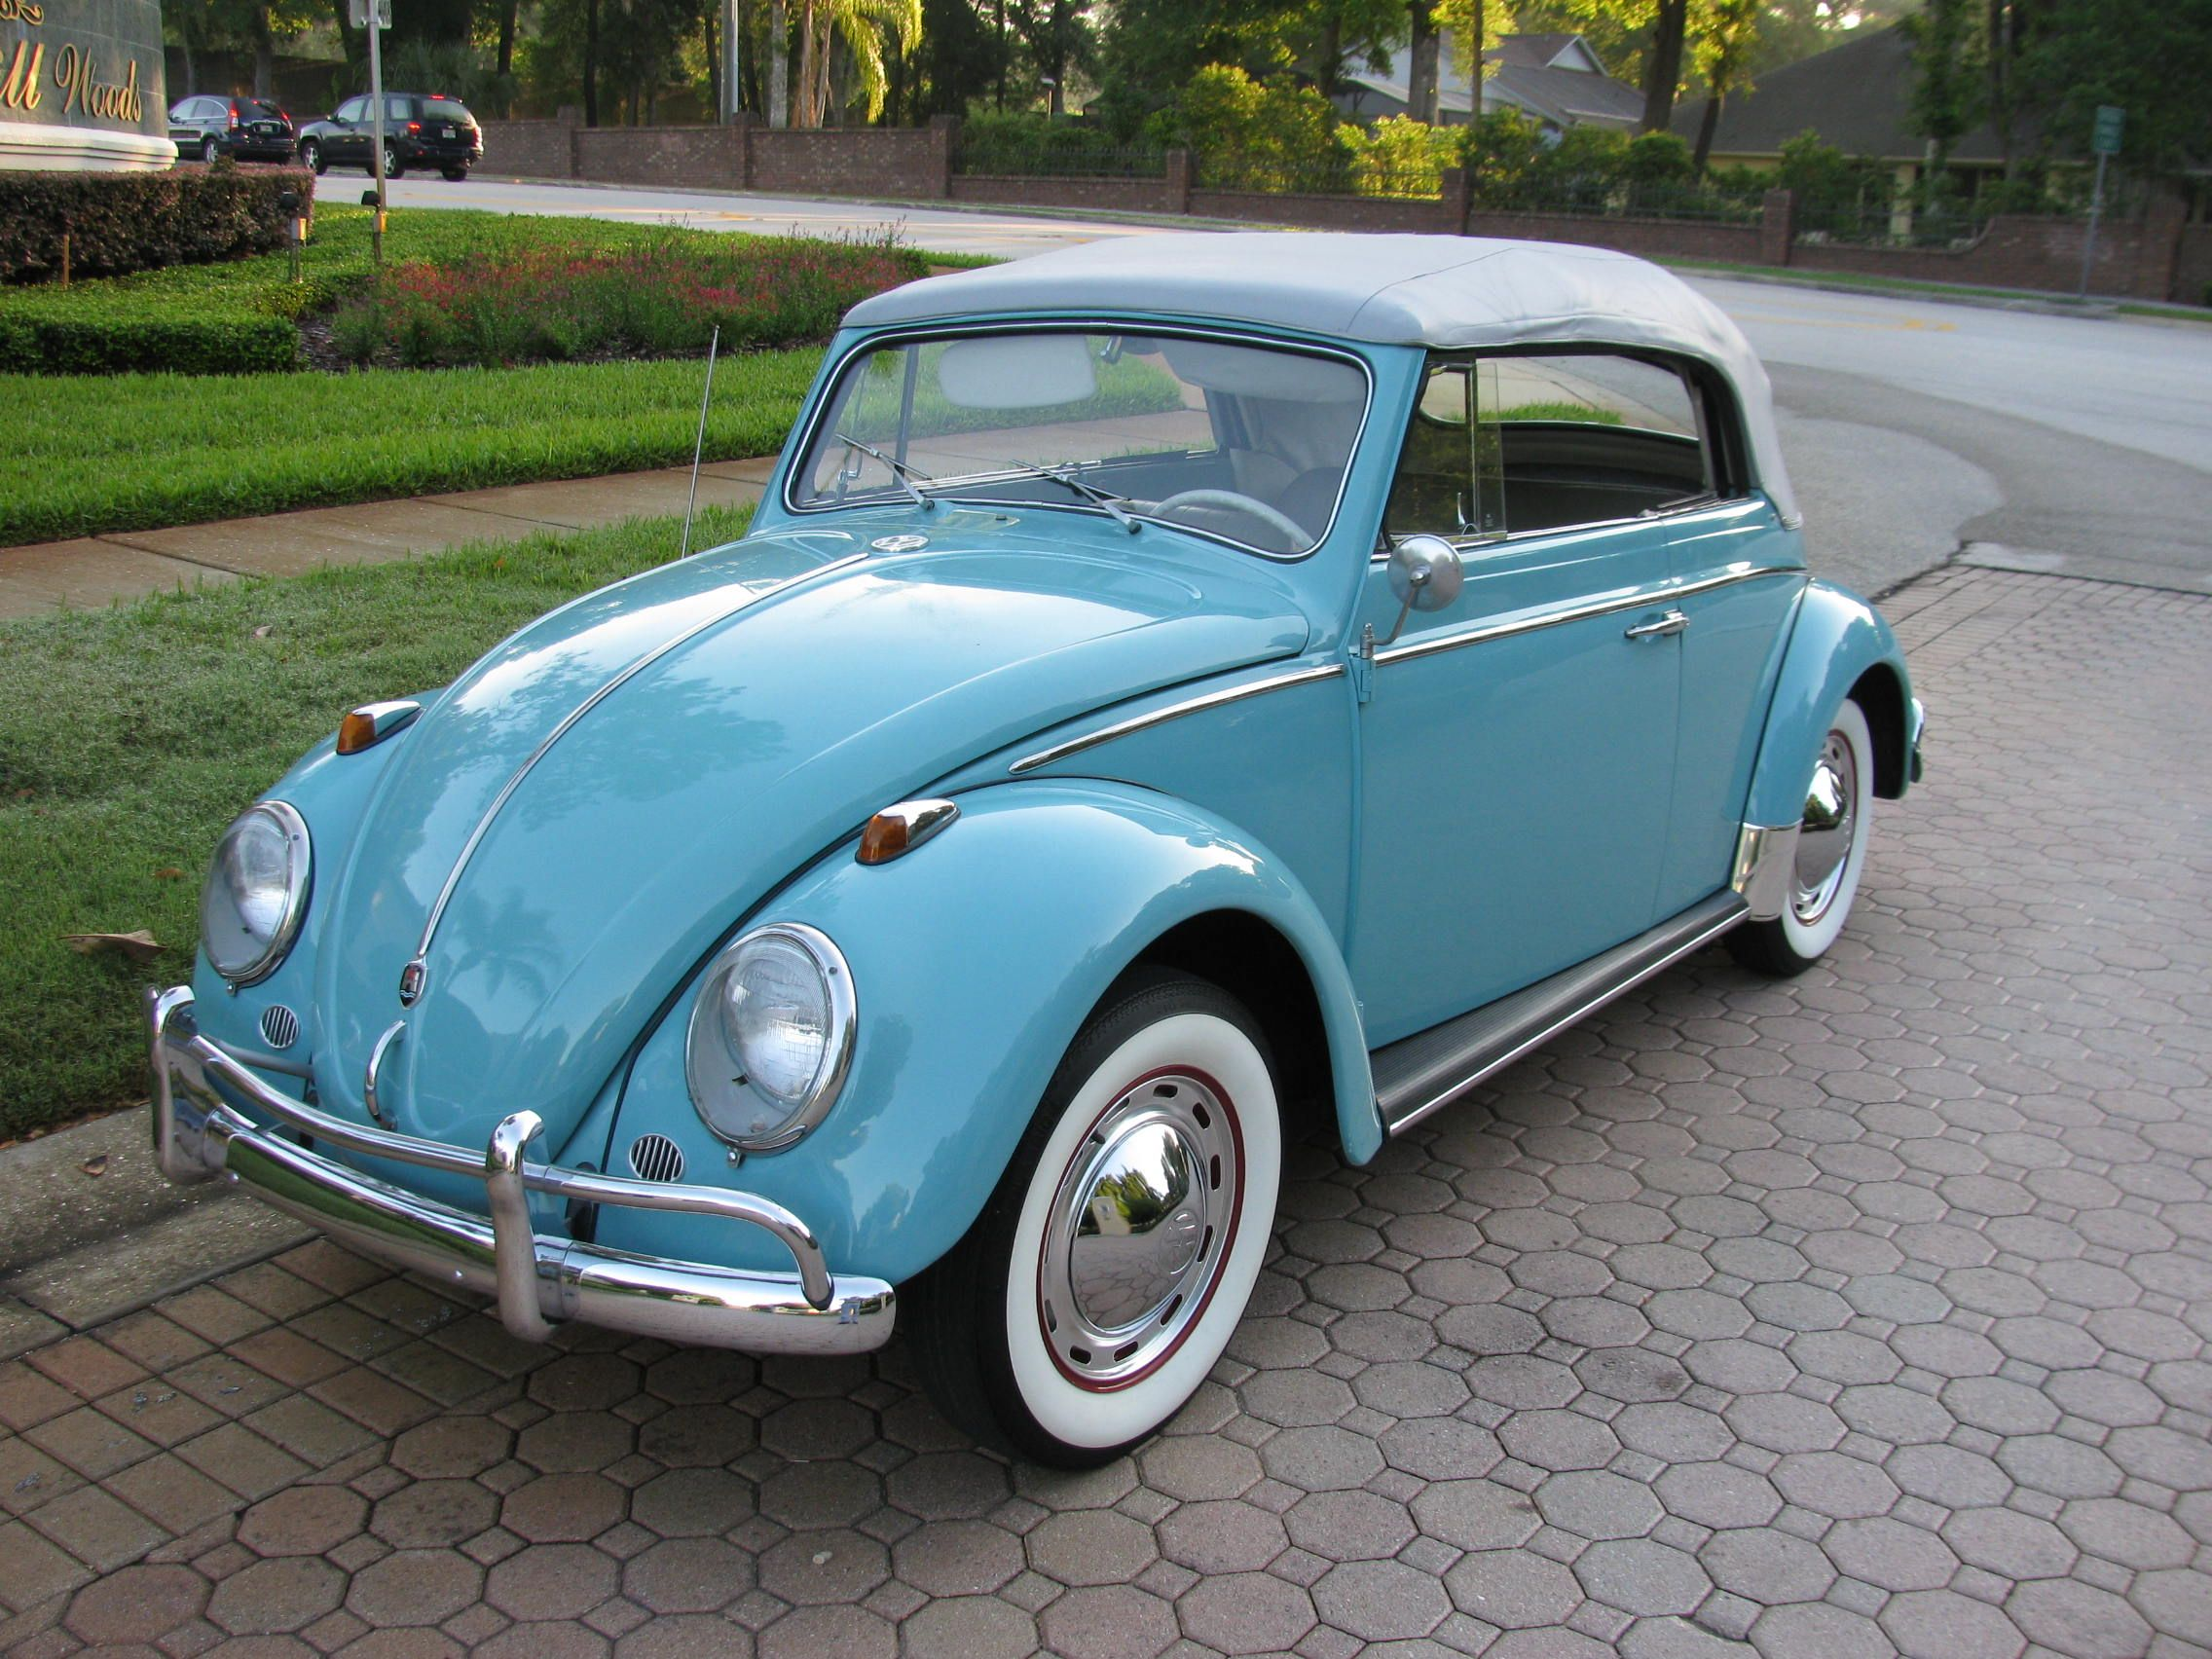 Vintage Powder Blue On White Vw Bug Convertible With Walls